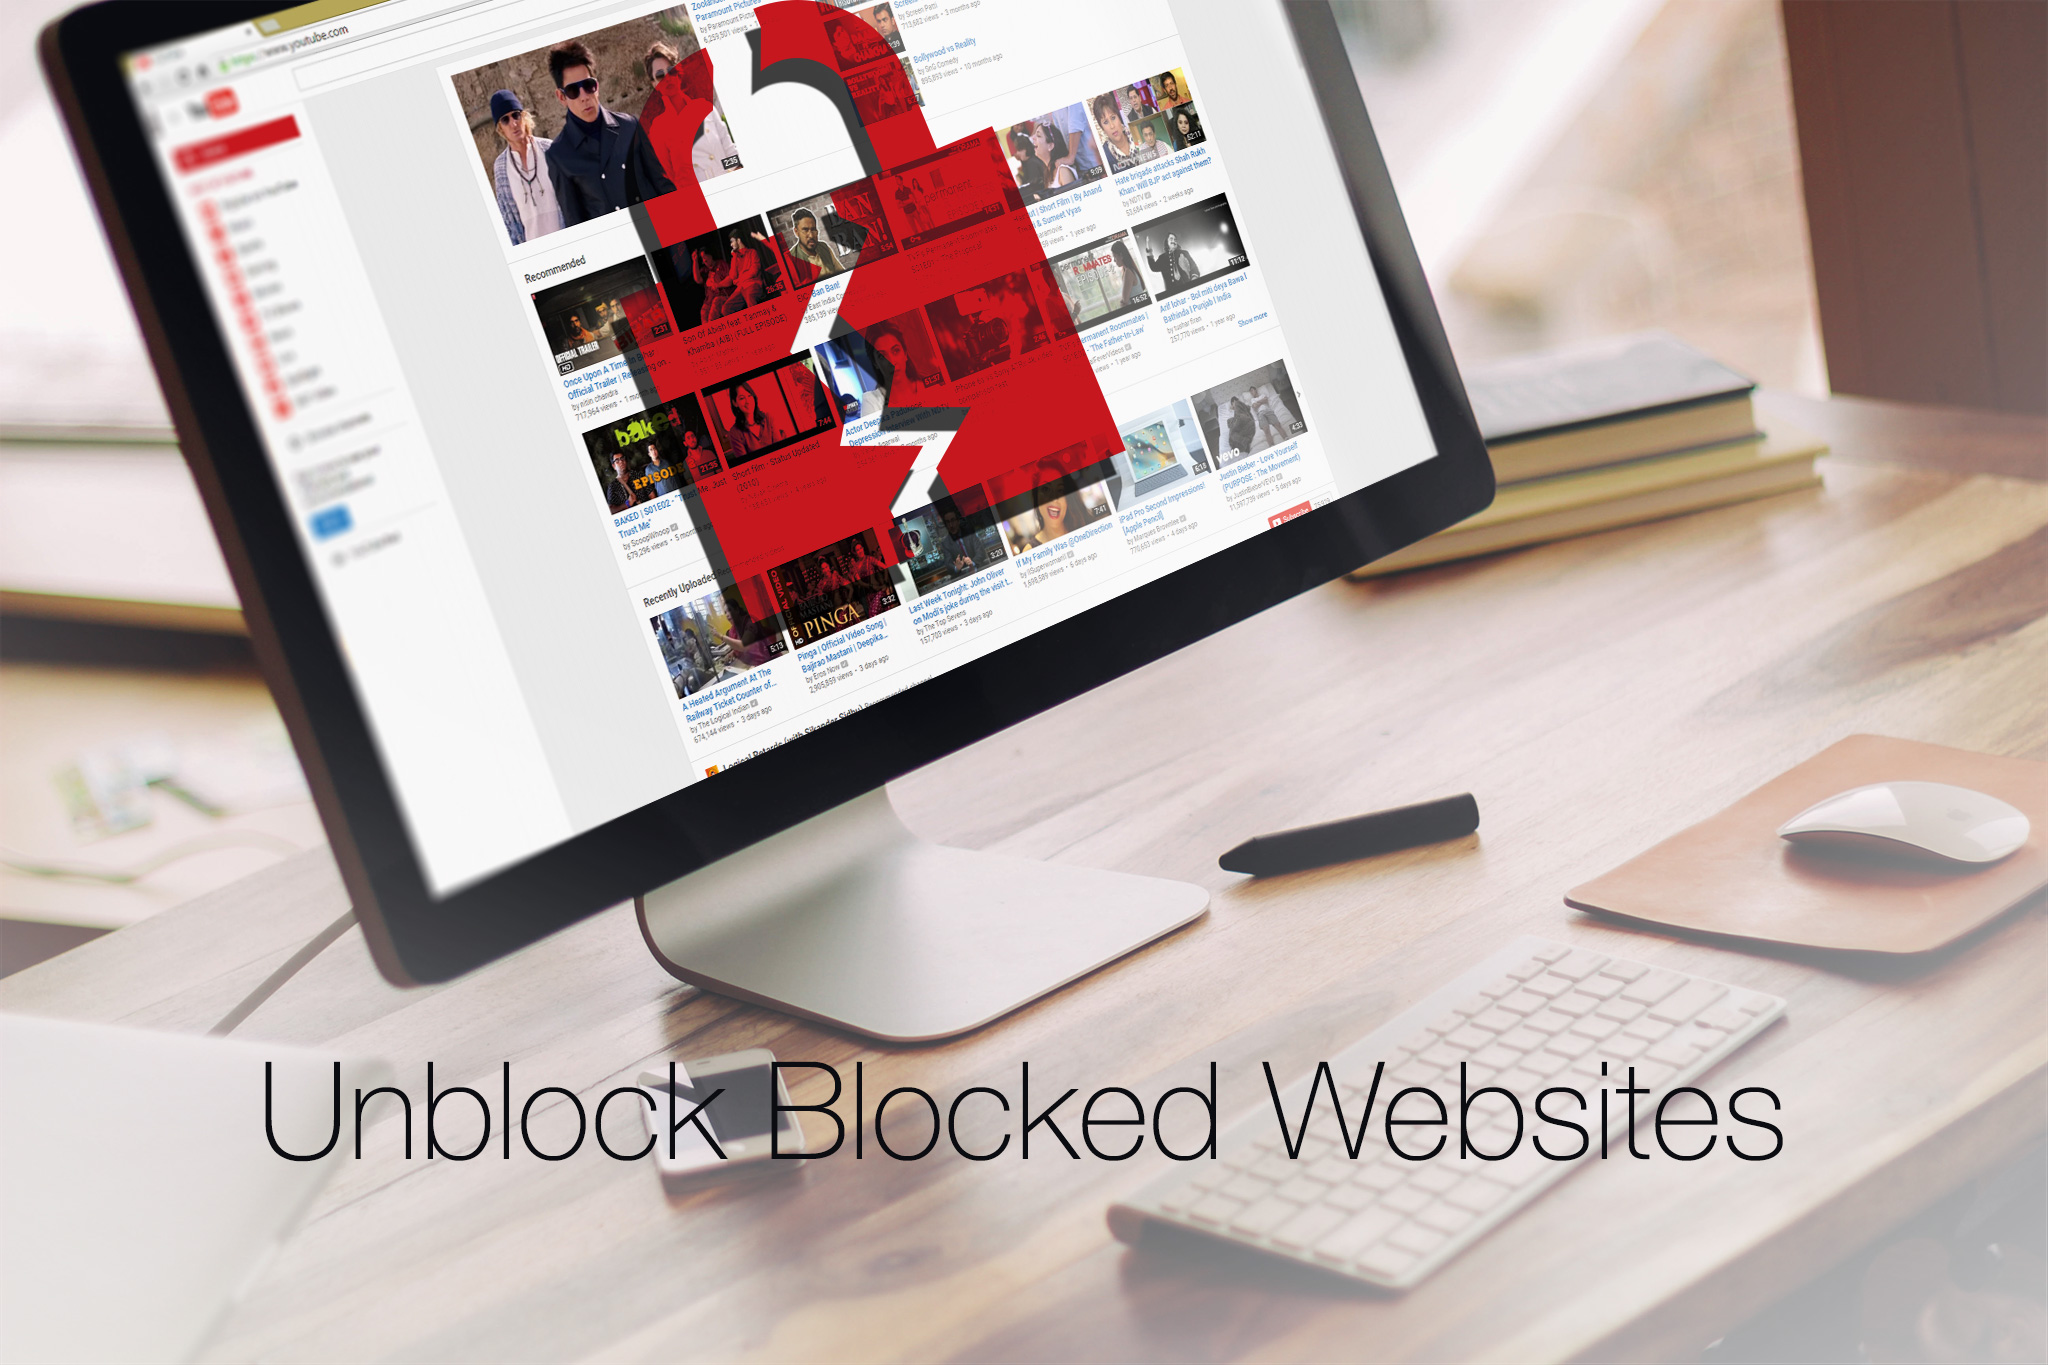 How to unblock Youtube or any blocked website by using Tor